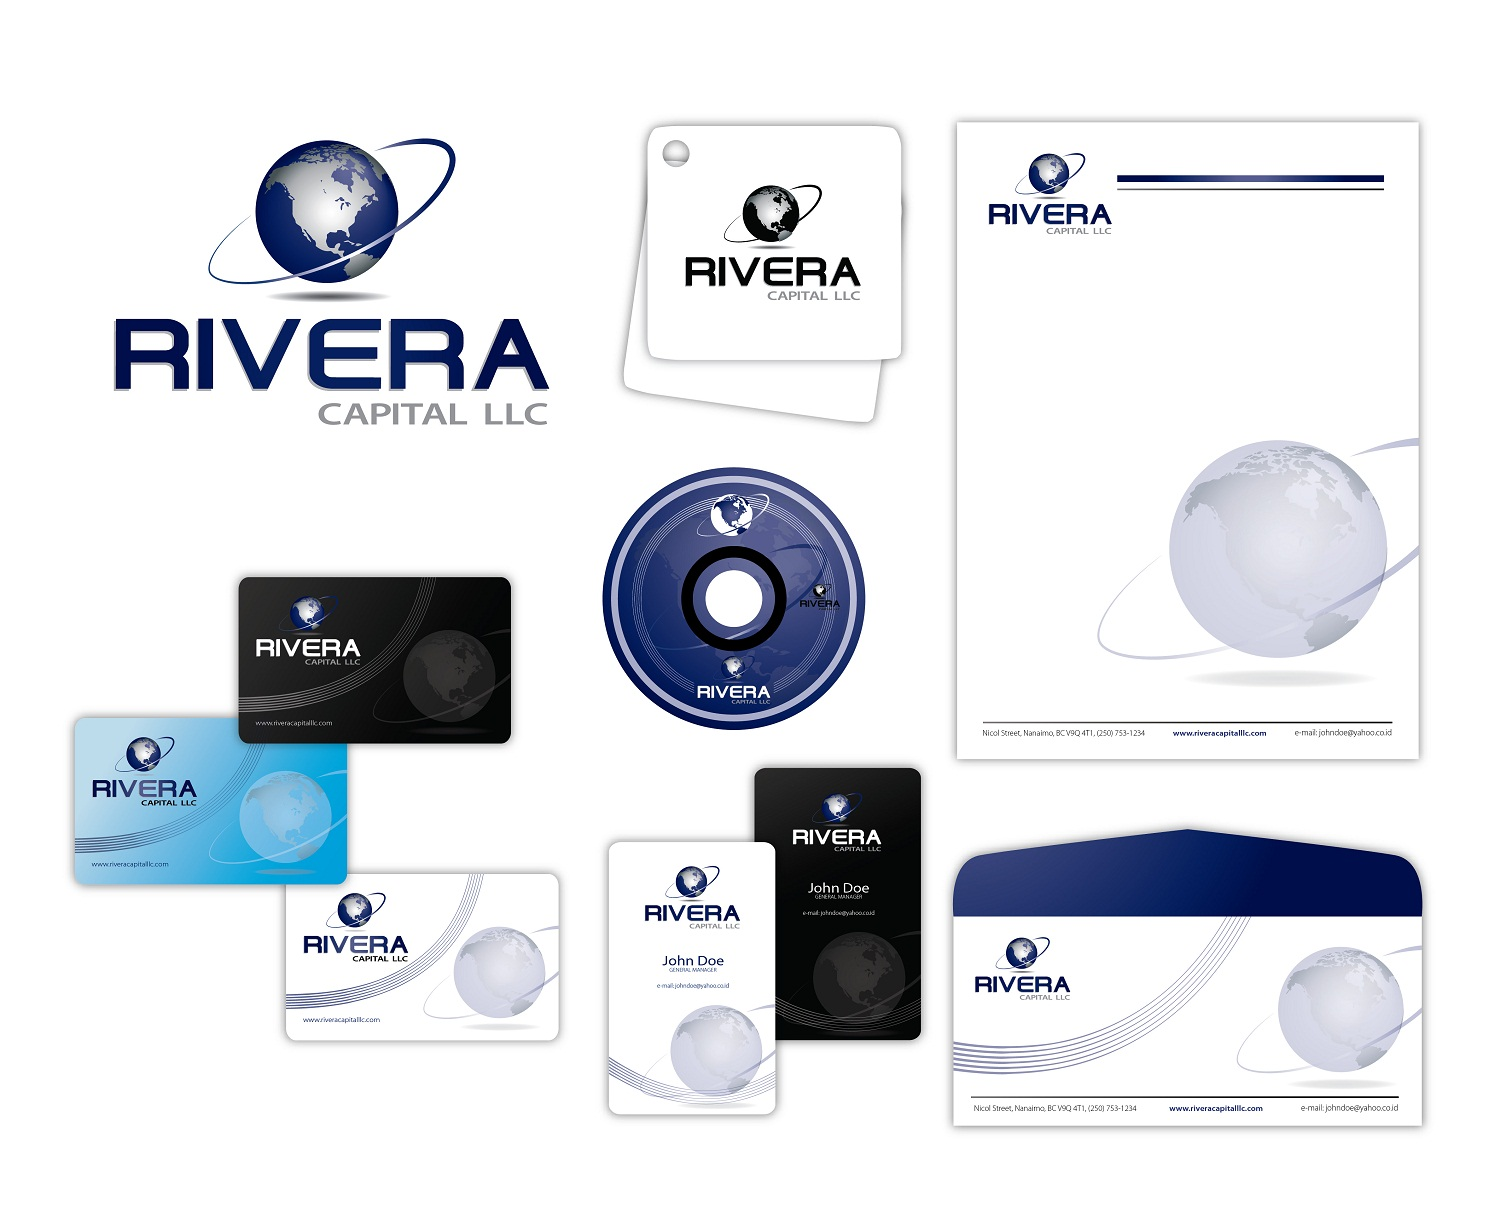 Logo Design by kowreck - Entry No. 86 in the Logo Design Contest Logo Design Needed for Exciting New Company Rivera Capital LLC LLC.